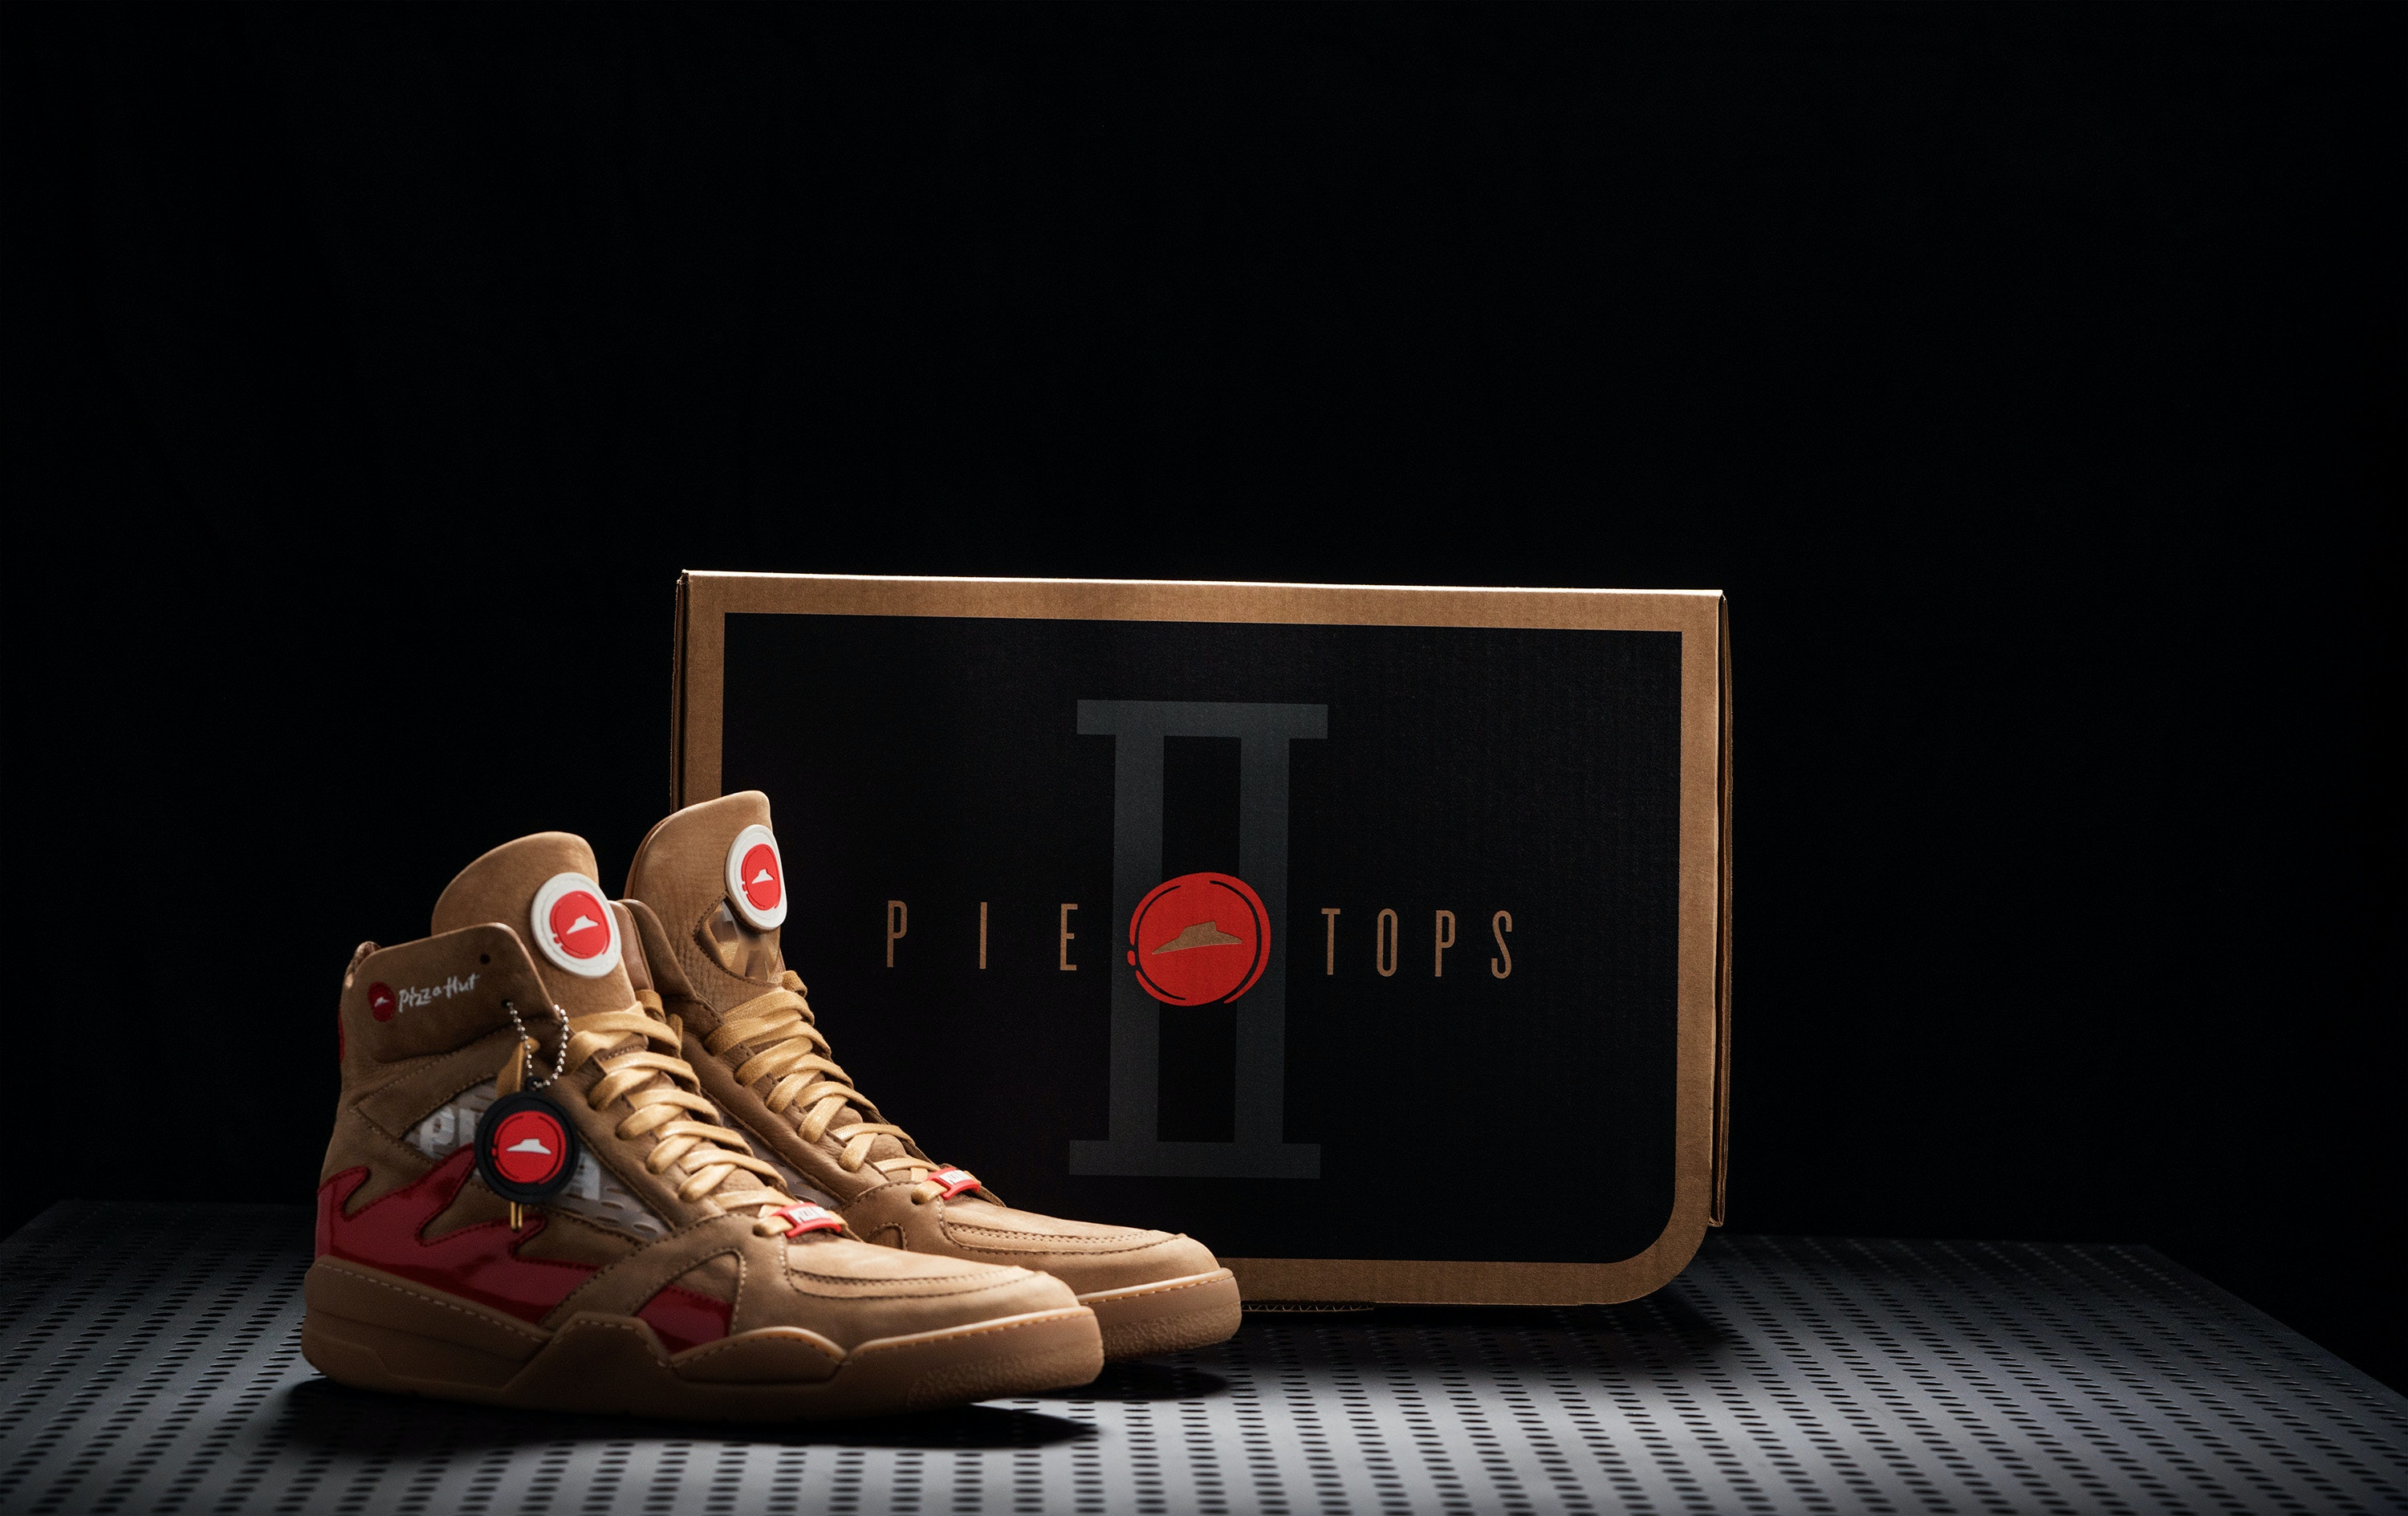 701c90c94698d Can You Buy Pizza Hut Pie Top Sneakers? These Delish Kicks Are The Real Deal